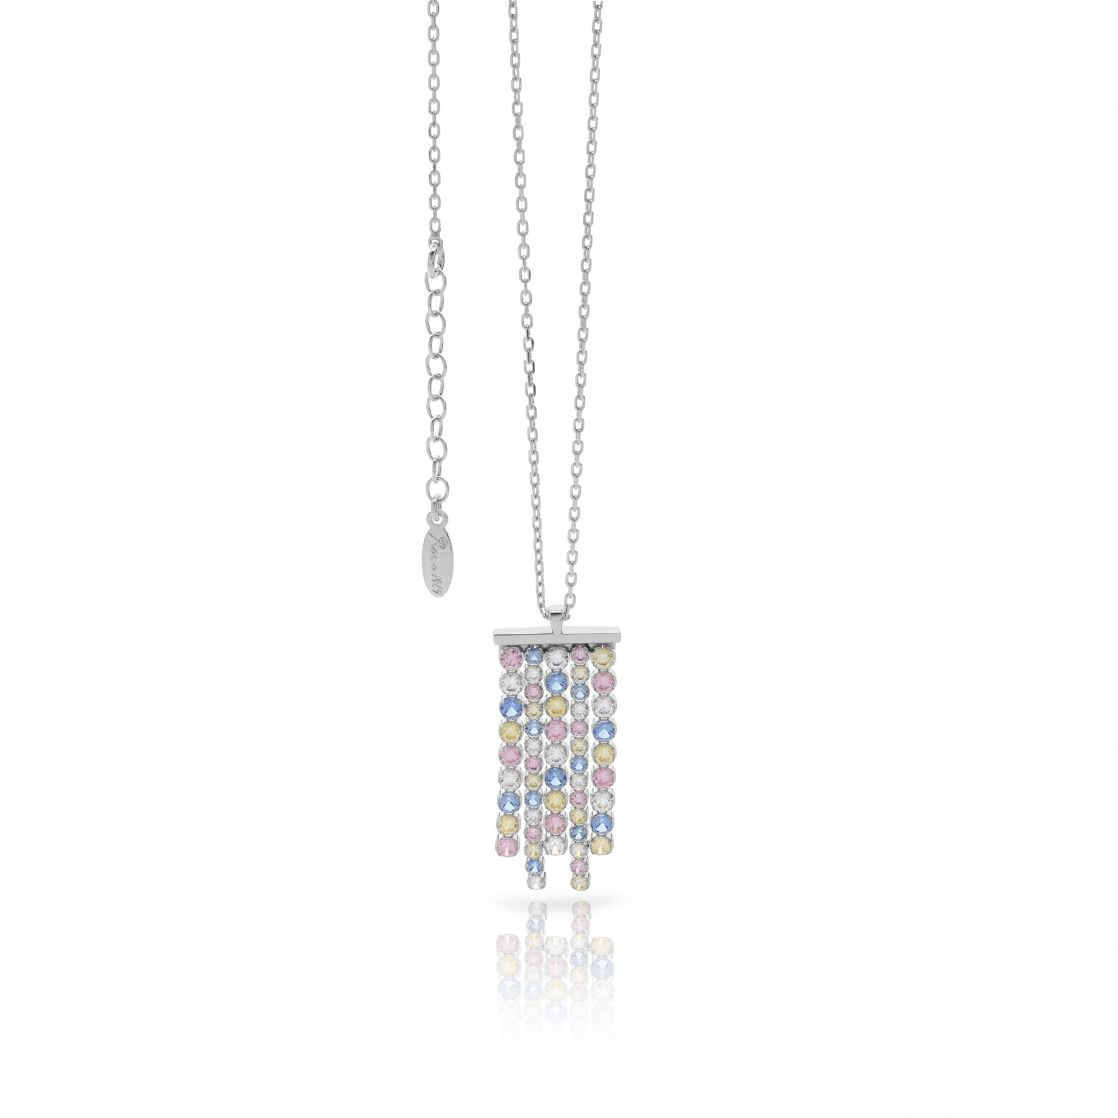 Waterfall necklace multicolor